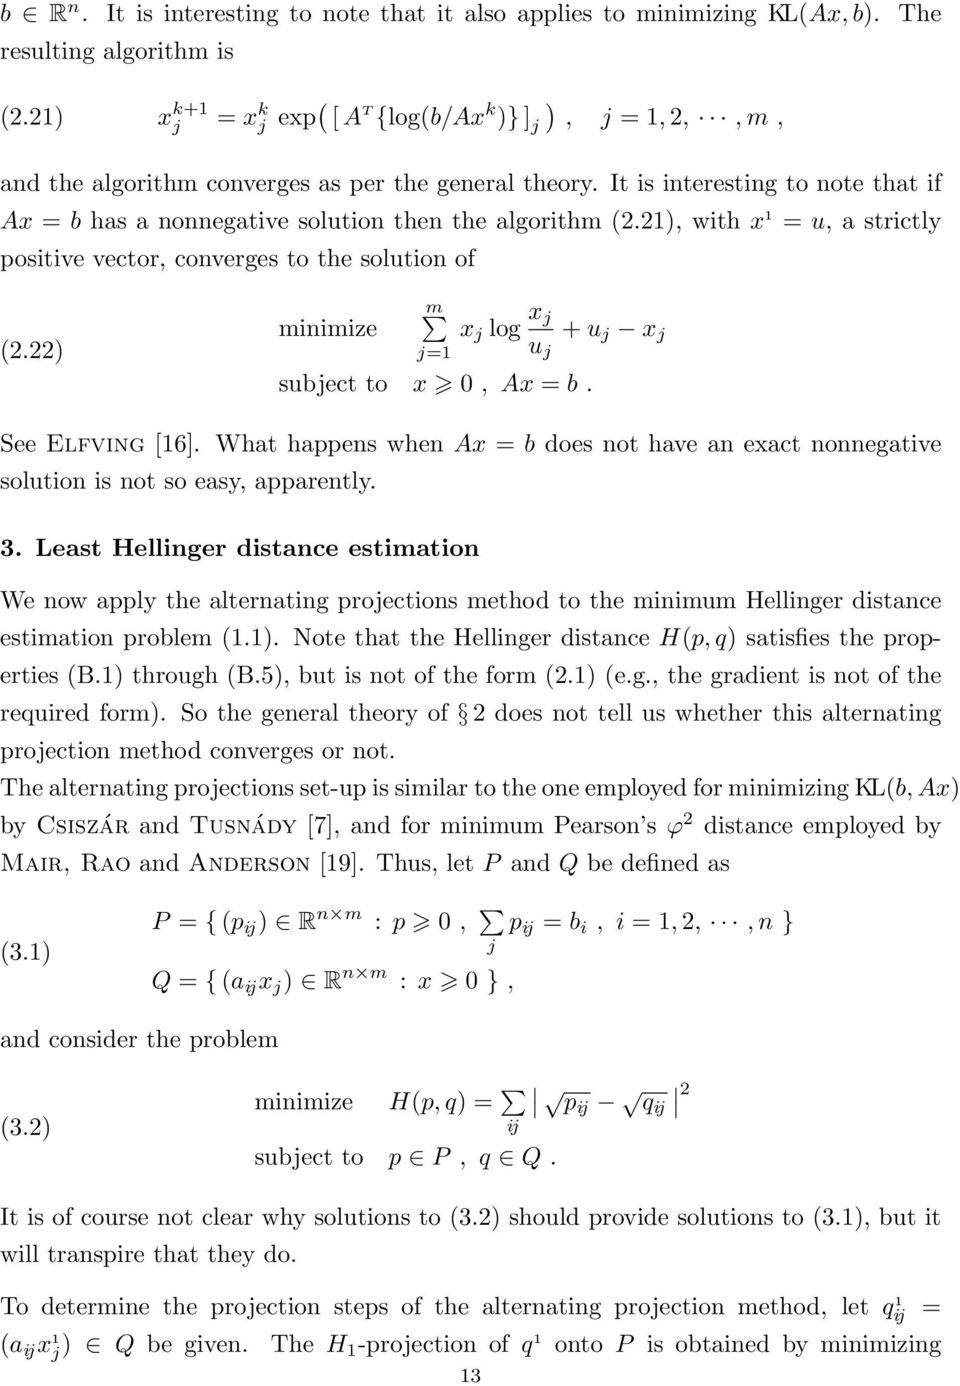 minimize m x log x u + u x subect to x 0, Ax = b See Elfving [16] What happens when Ax = b does not have an exact nonnegative solution is not so easy, apparently 3 Least Hellinger distance estimation